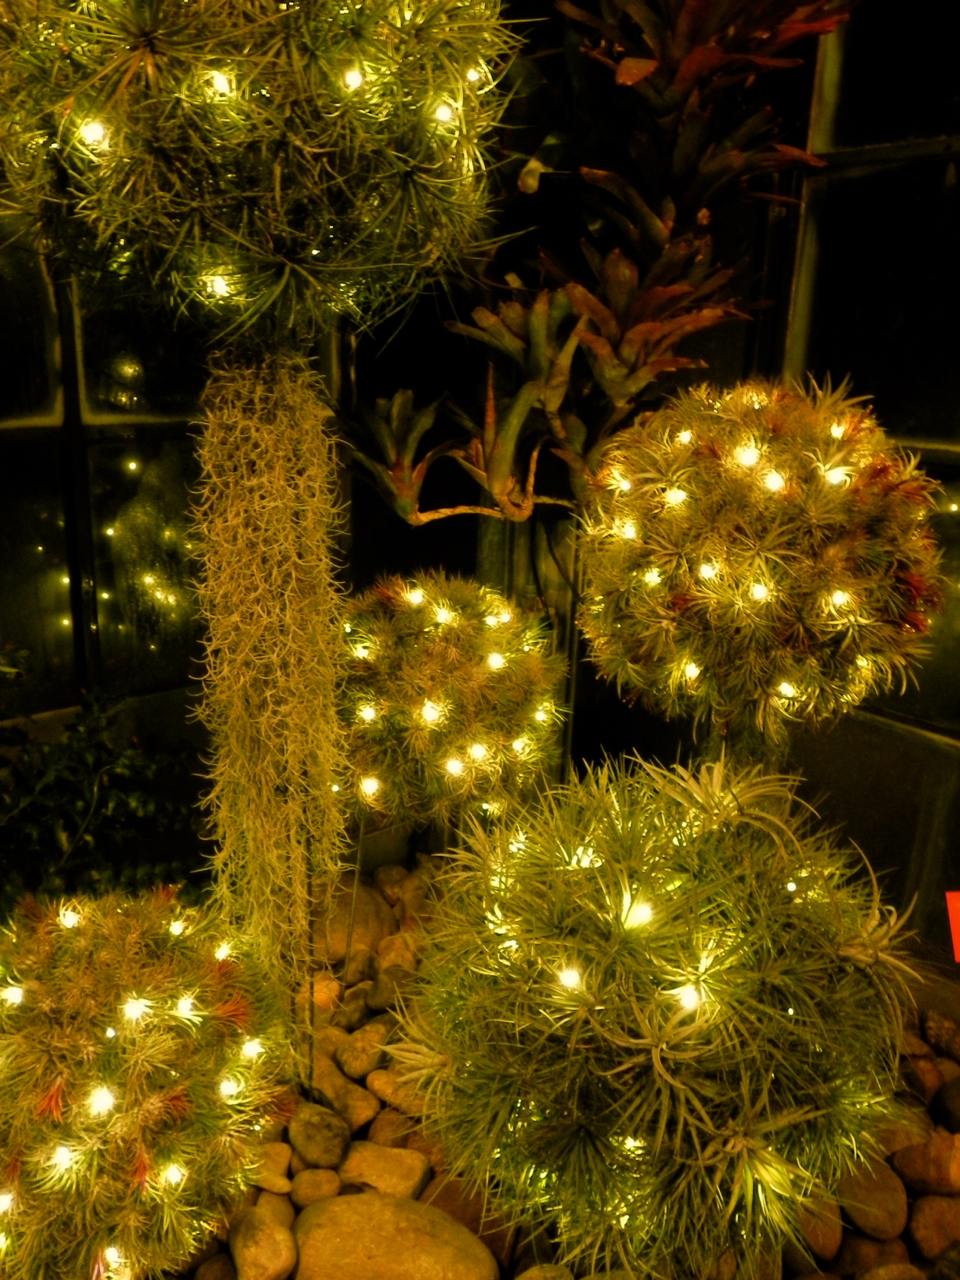 christmas tree cactus garden - photo #14